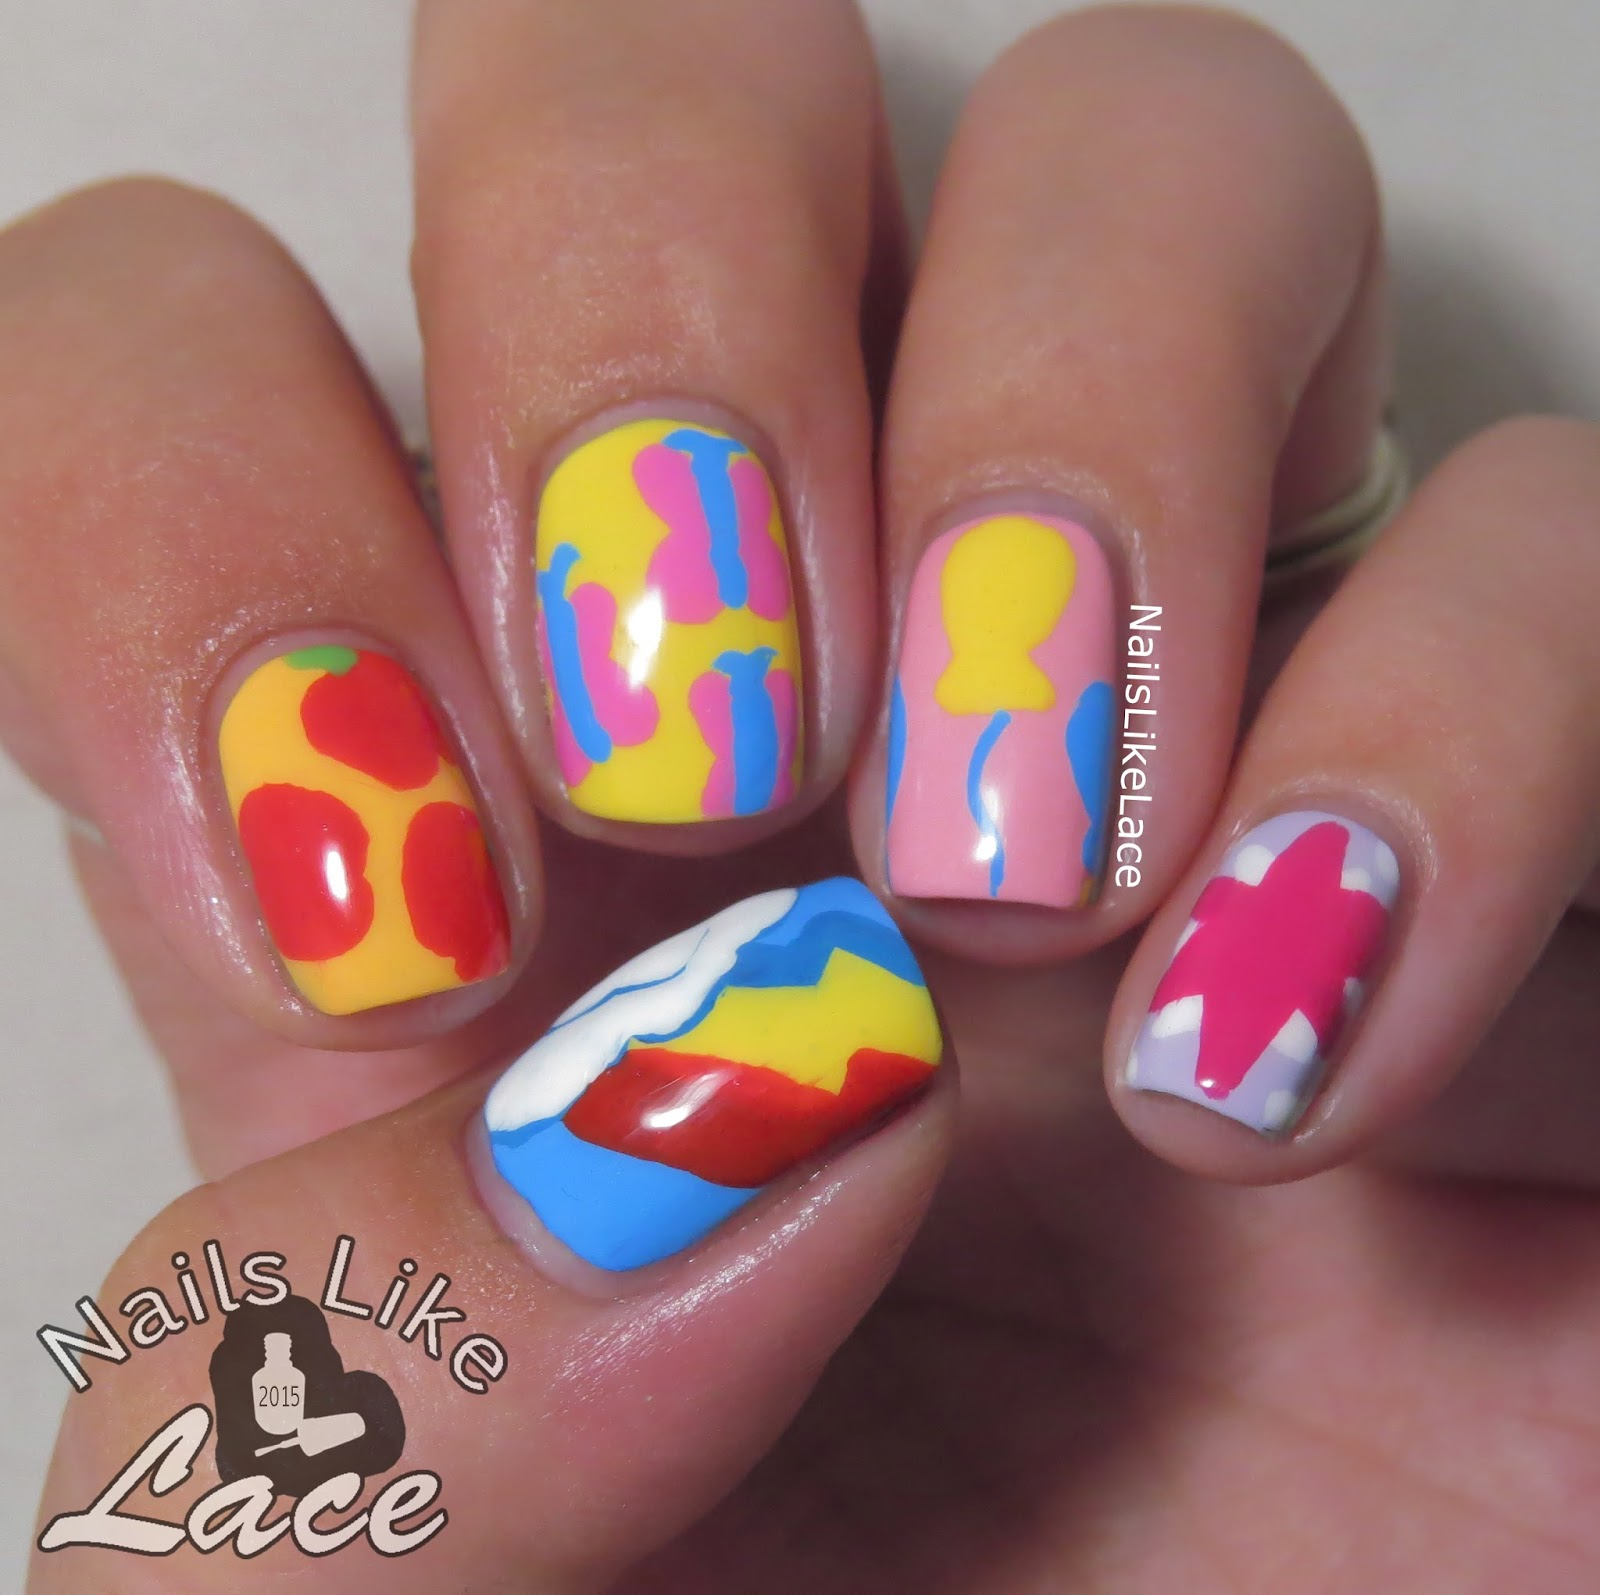 NailsLikeLace: My Little Pony Nails